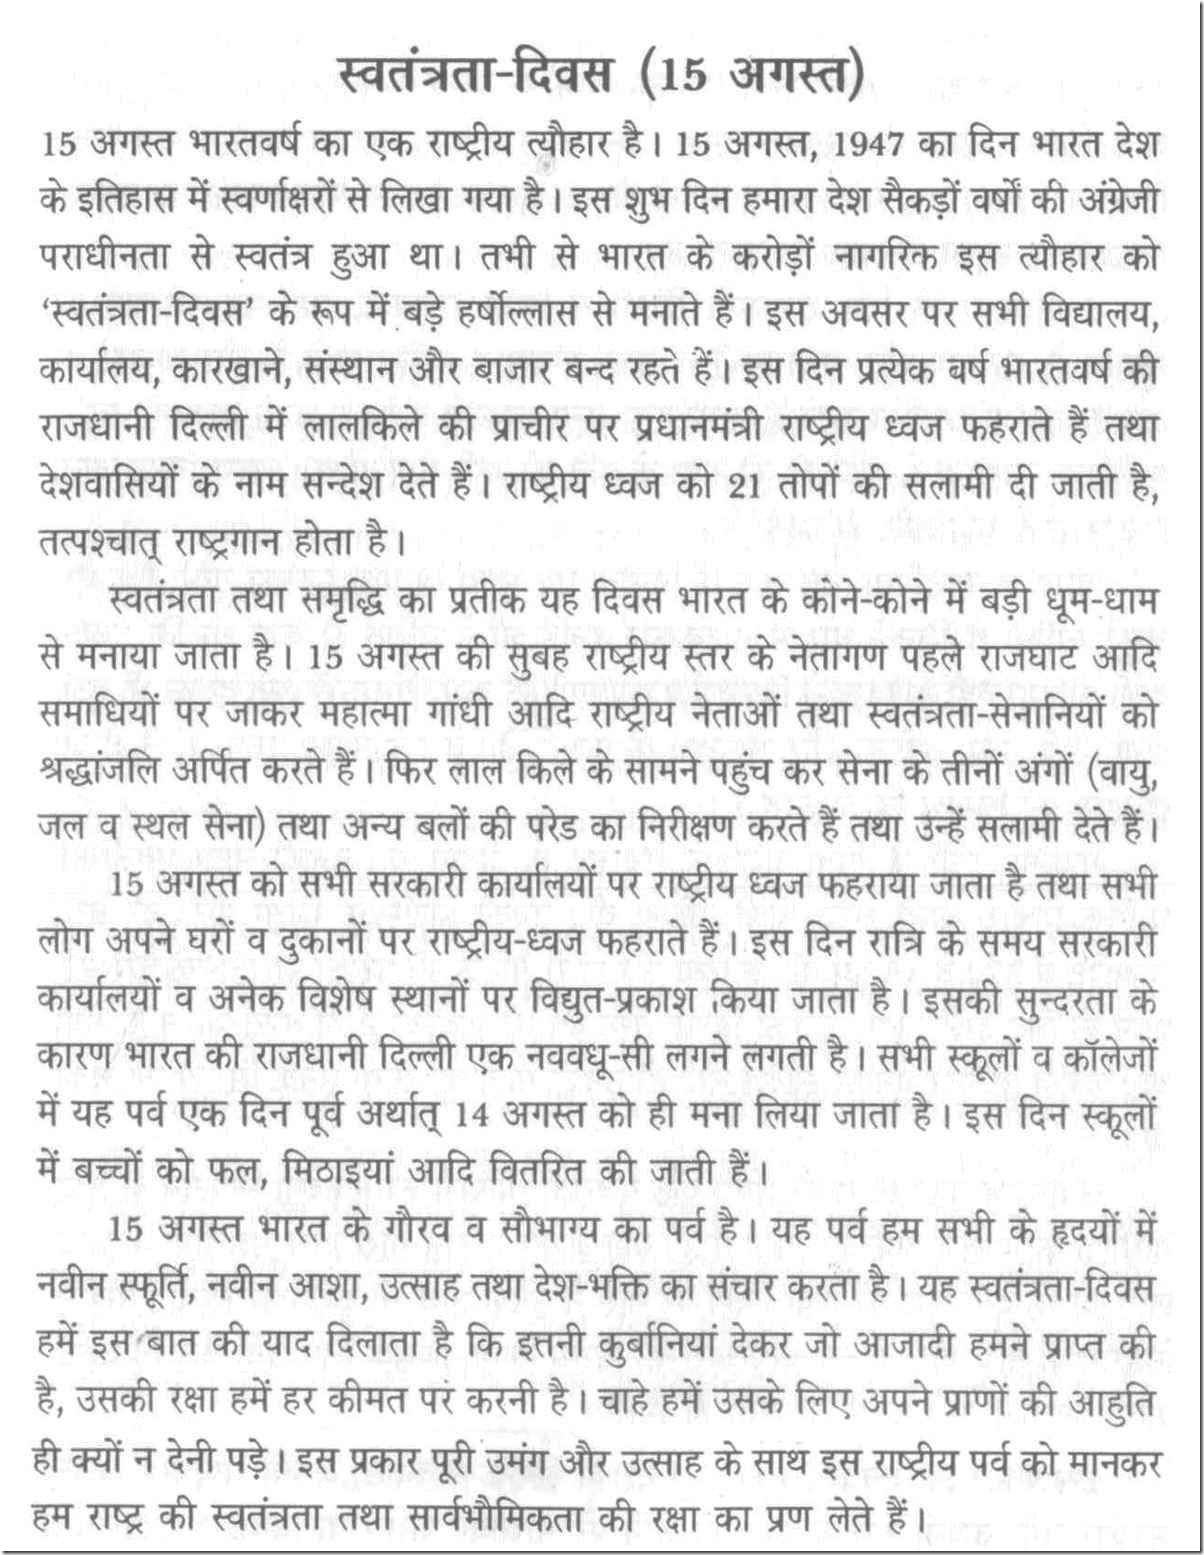 007 My Country Essay In Hindi Example Phenomenal 10 Lines Is Great Full